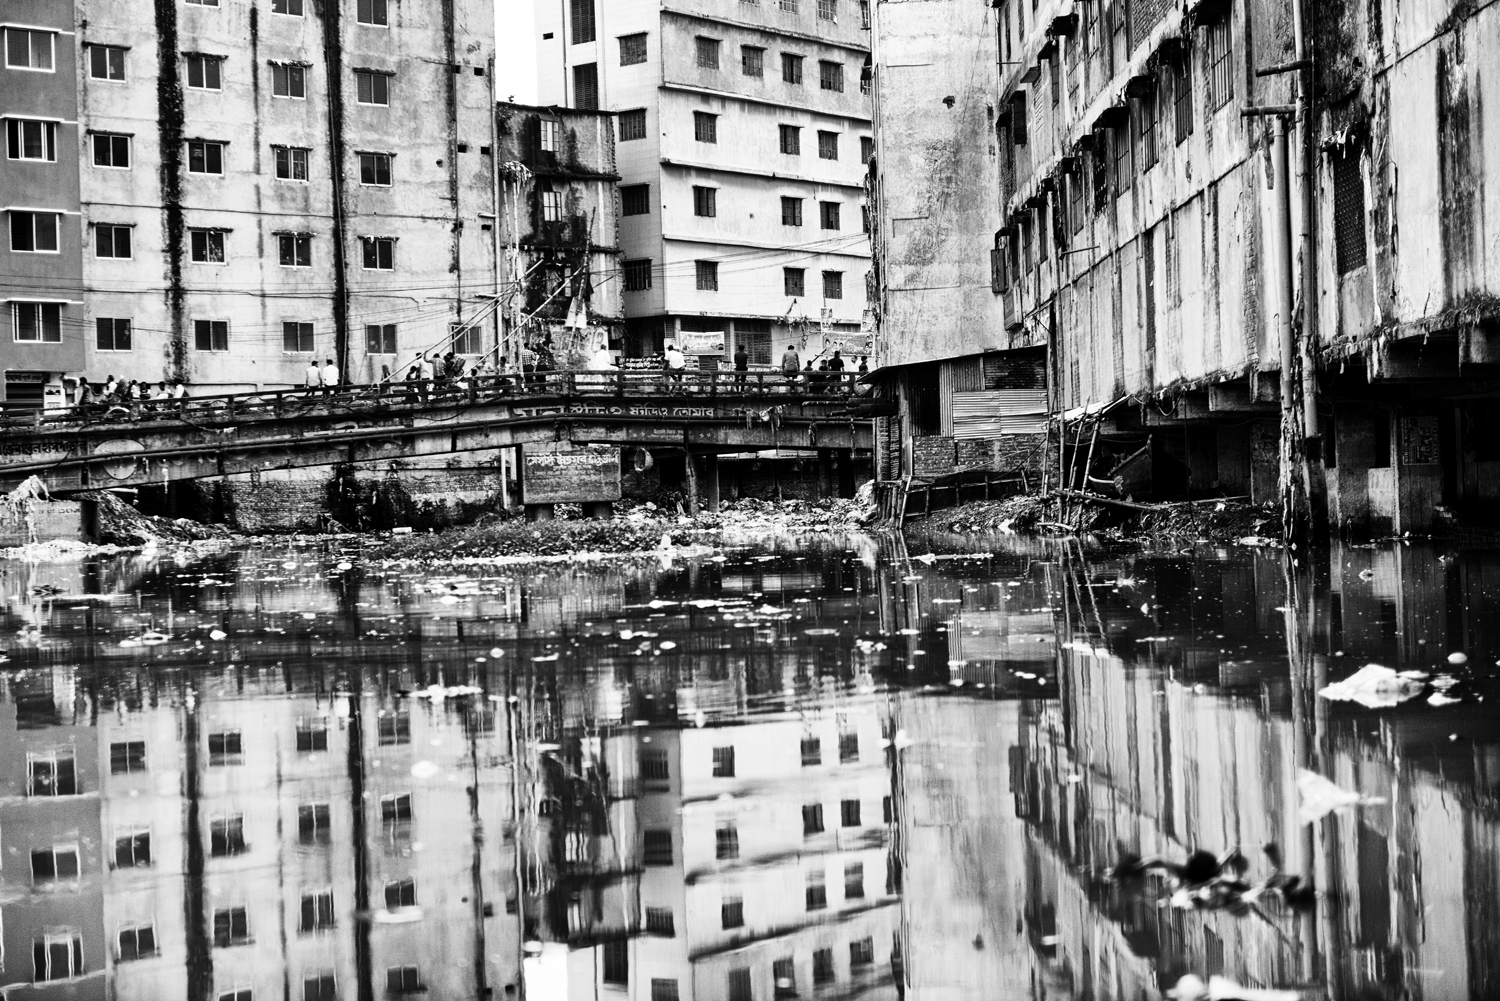 Every day almost 21,600 cubic meters of industrial sewage ends up in the Buriganga River. The Buriganga River is                               deadly due to solid polluting agents that reach its shore, Dhaka, Bangladesh.